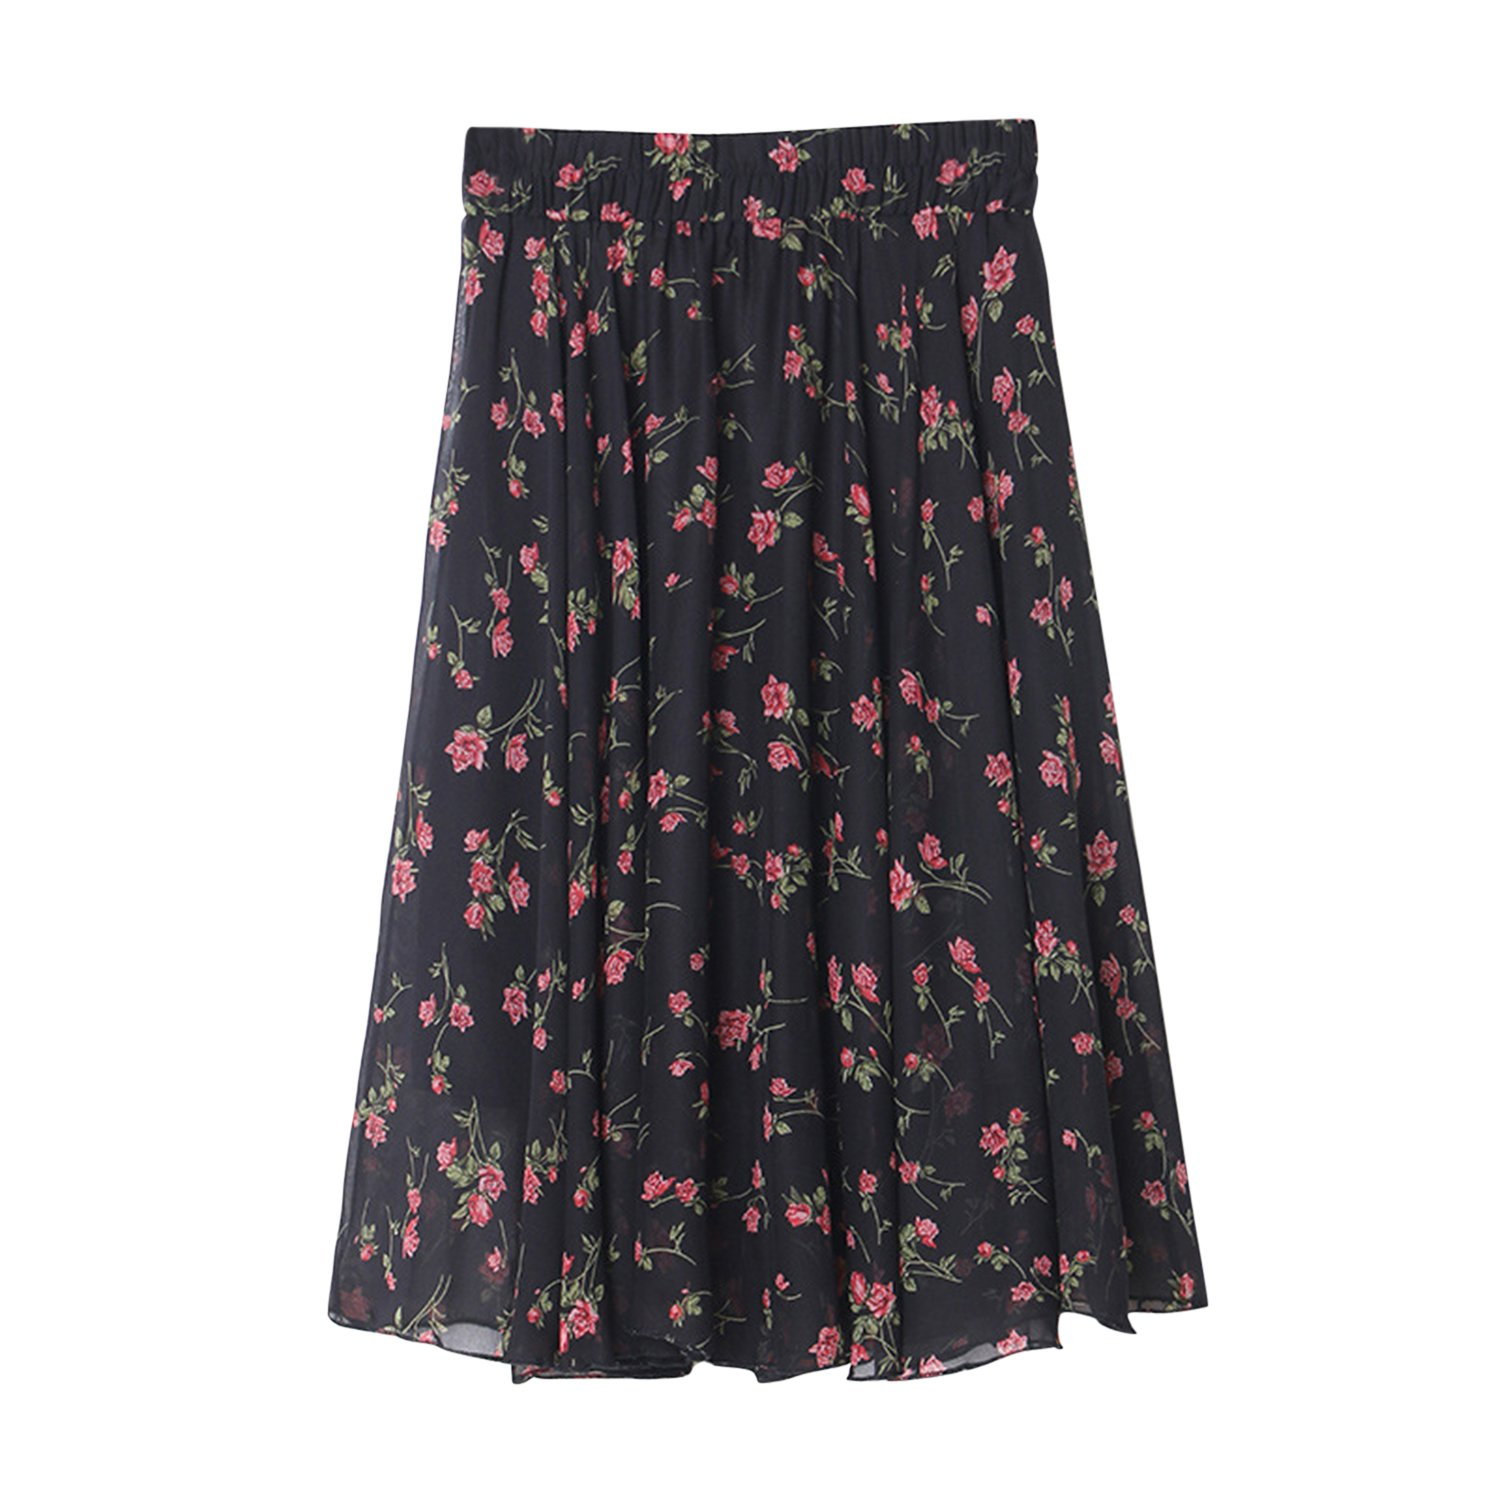 Misscat Women's Chiffon Flower Print Skirt High Waist Elastic Knee Length Dress